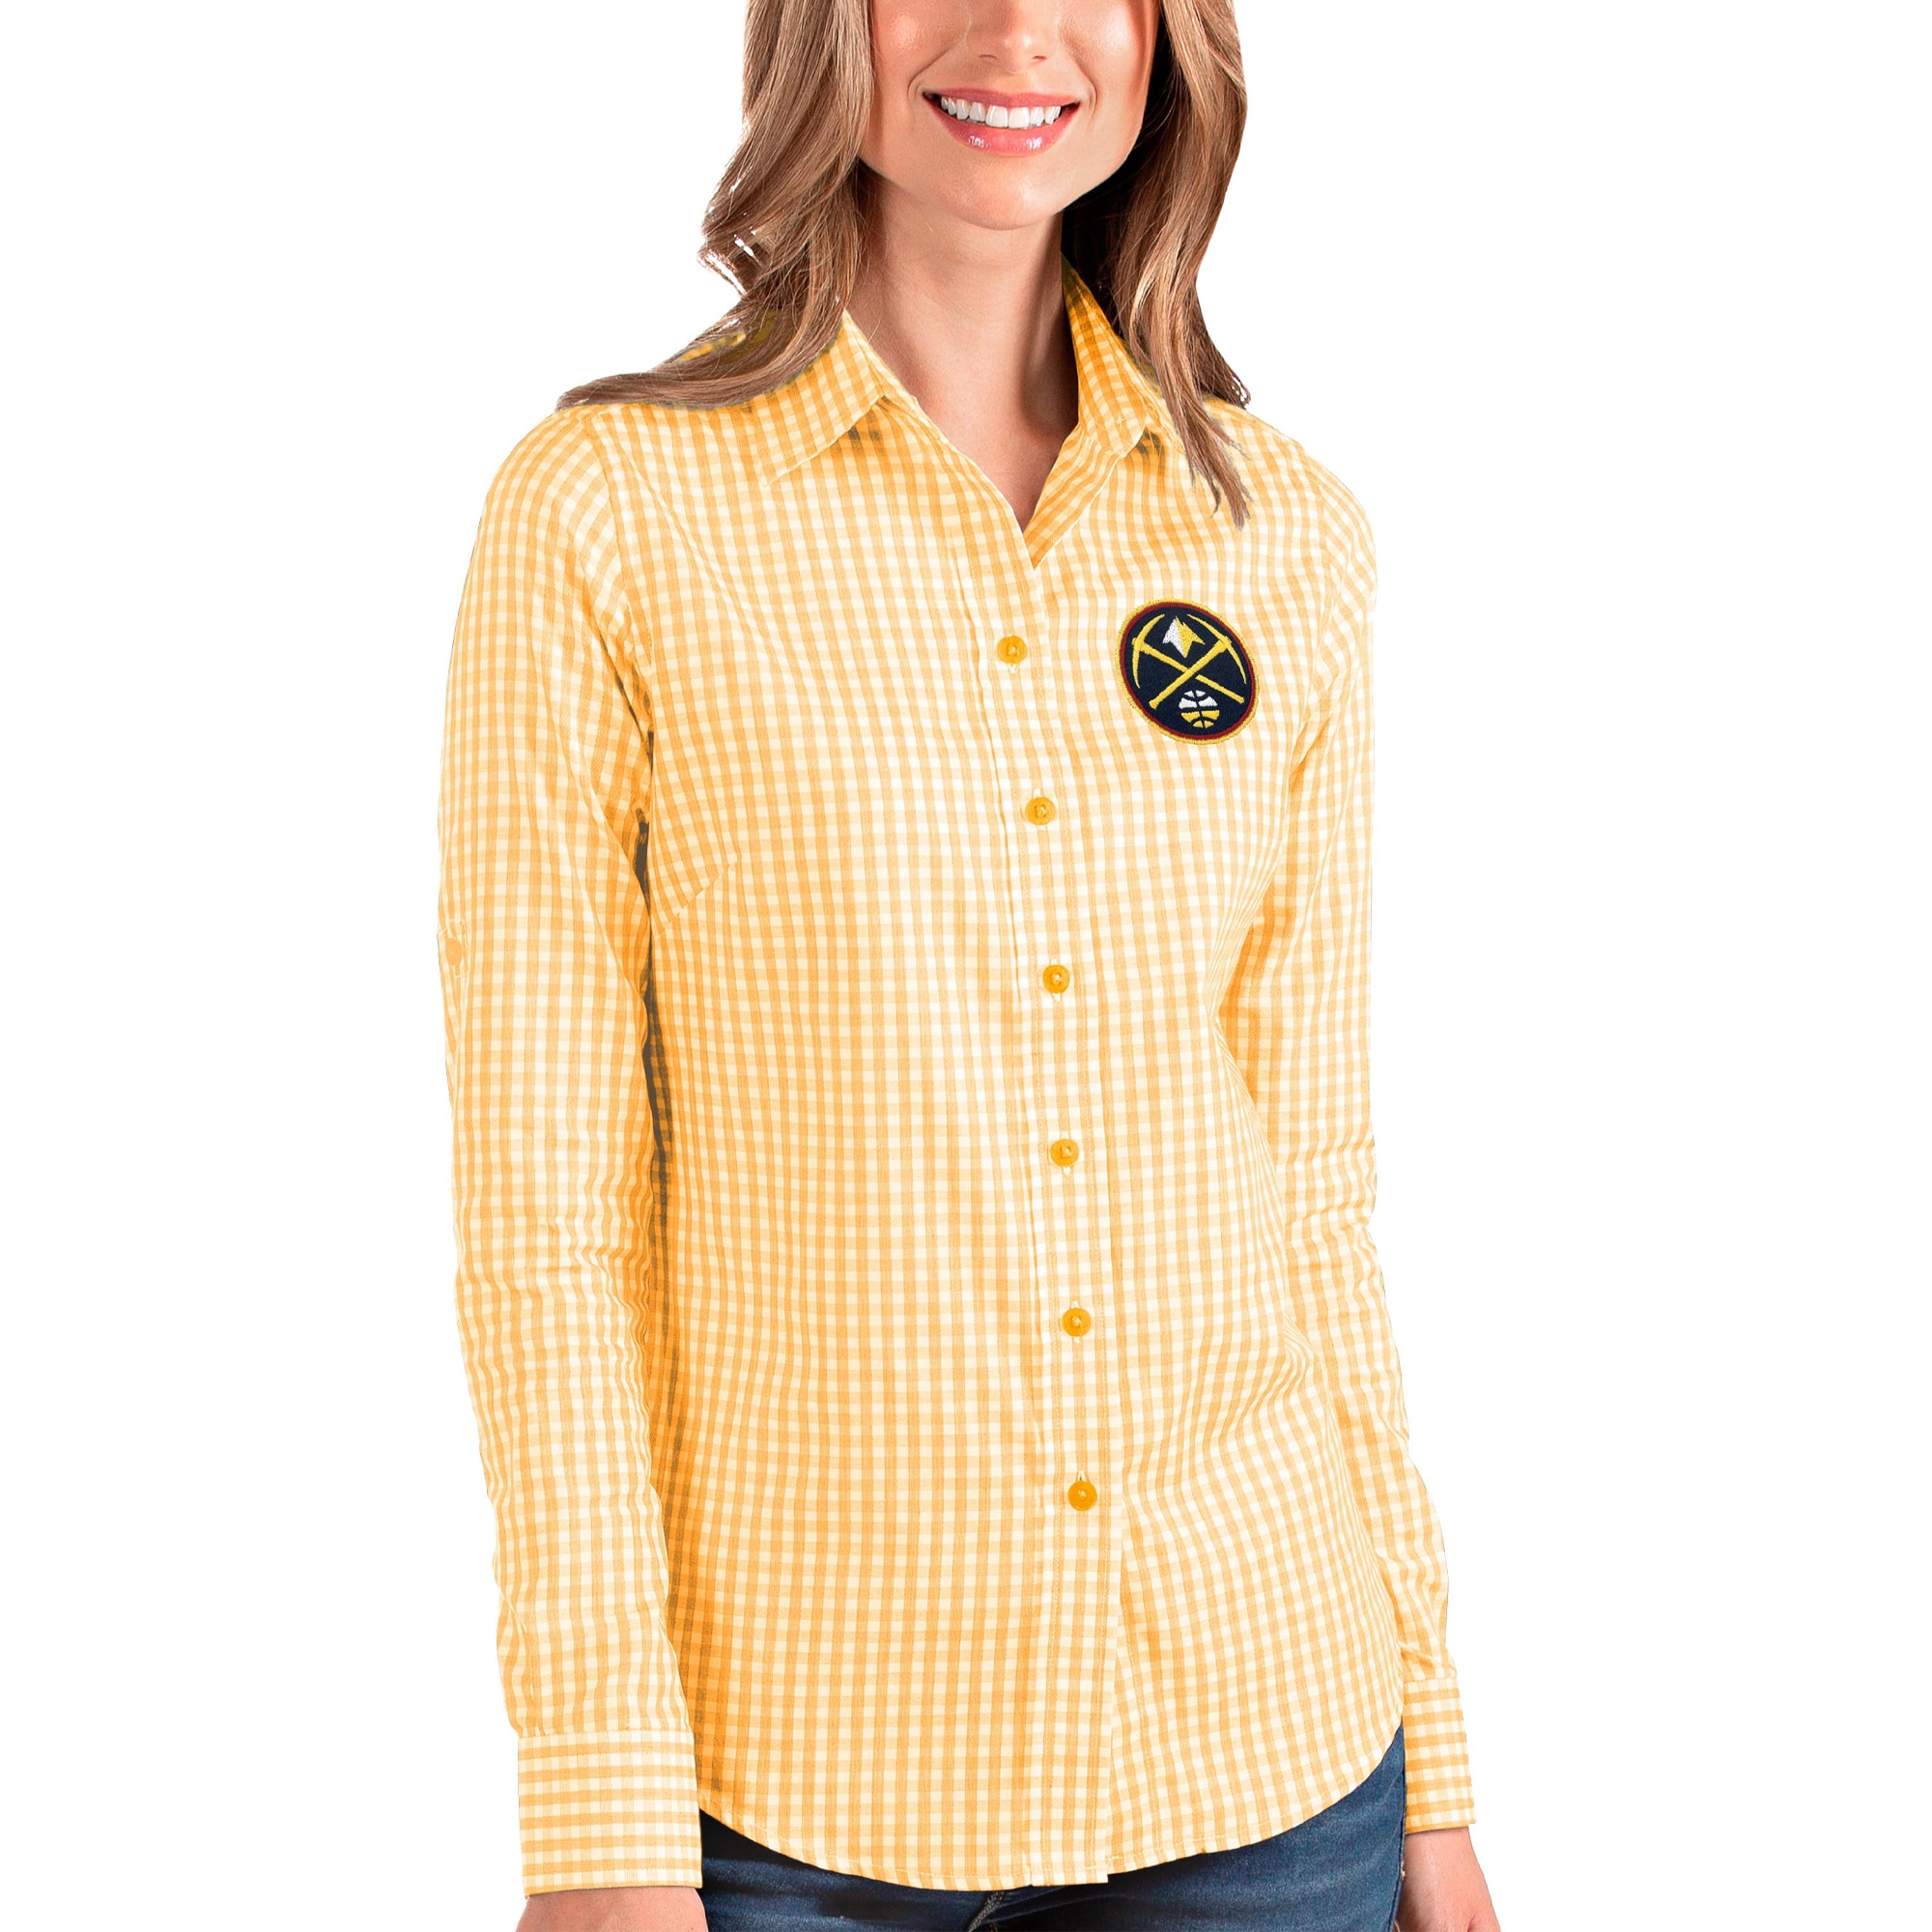 Denver Nuggets Antigua Women's Structure Button-Up Long Sleeve Shirt - Gold/White